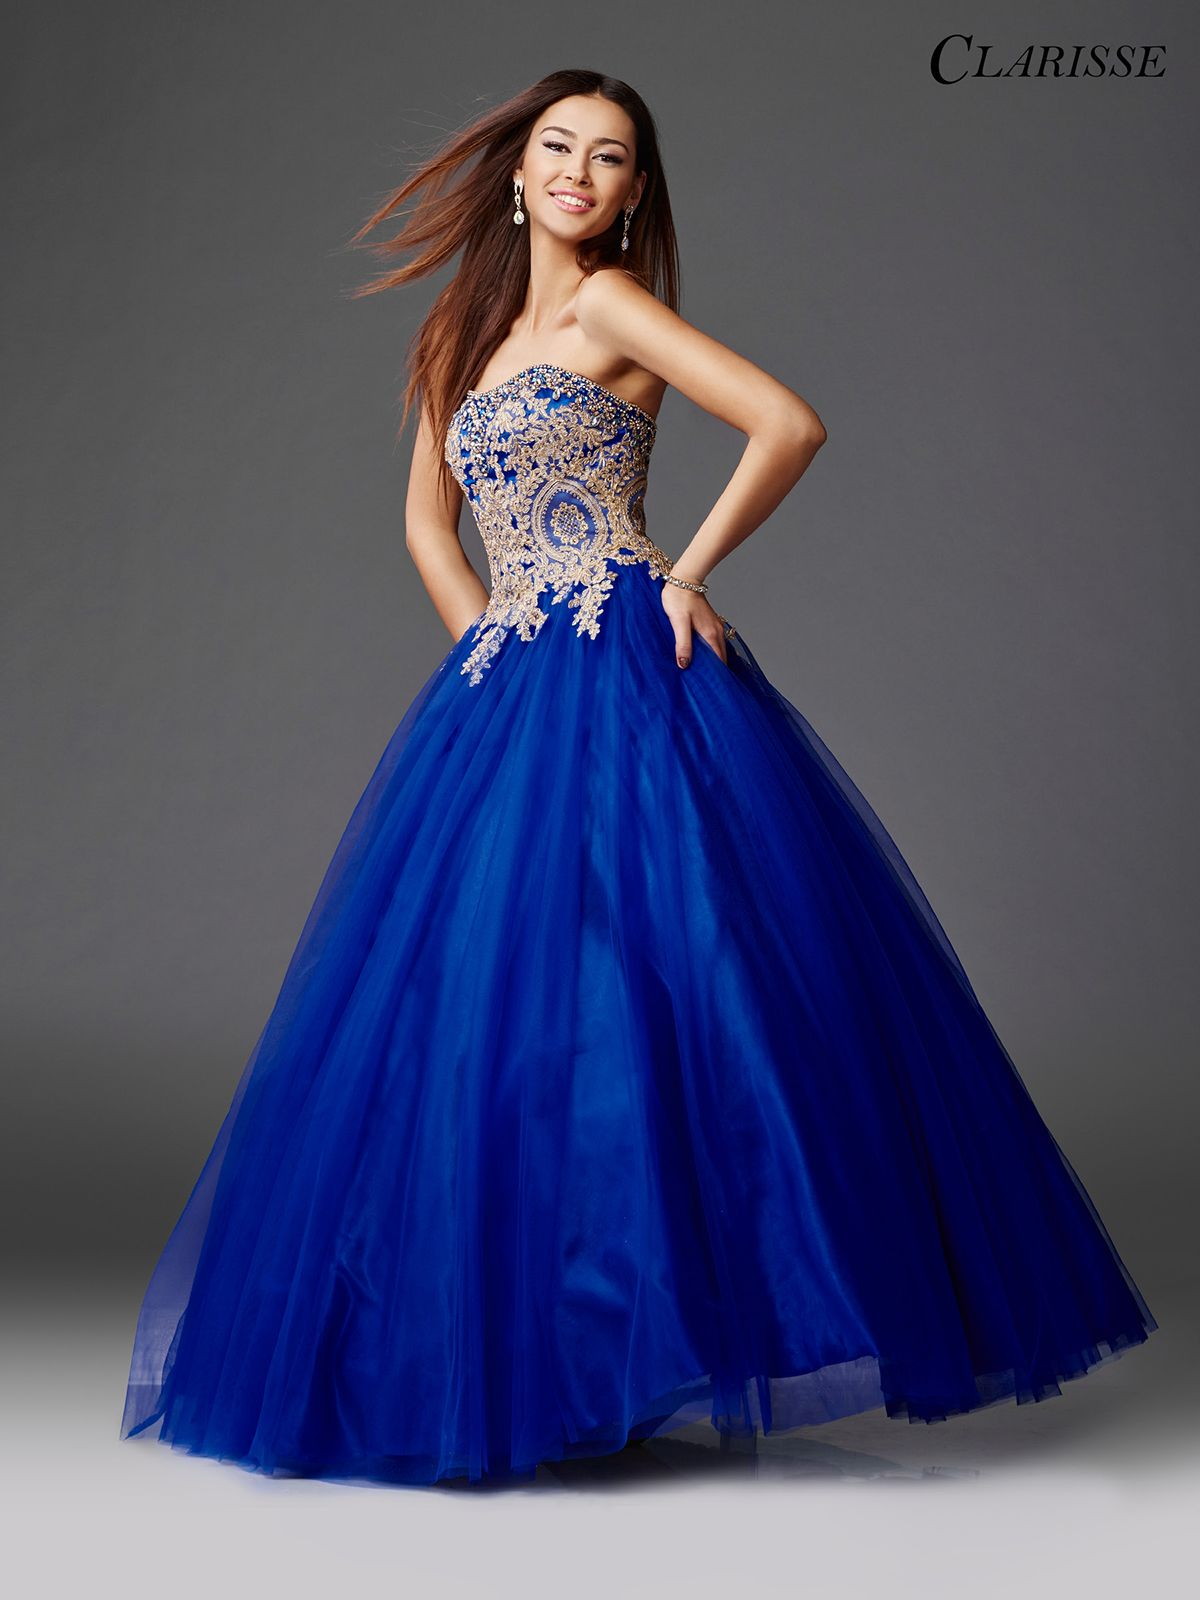 Gold and Royal Ball Gown 3508   BLUE PROM DRESSES   Pinterest   Ball ...